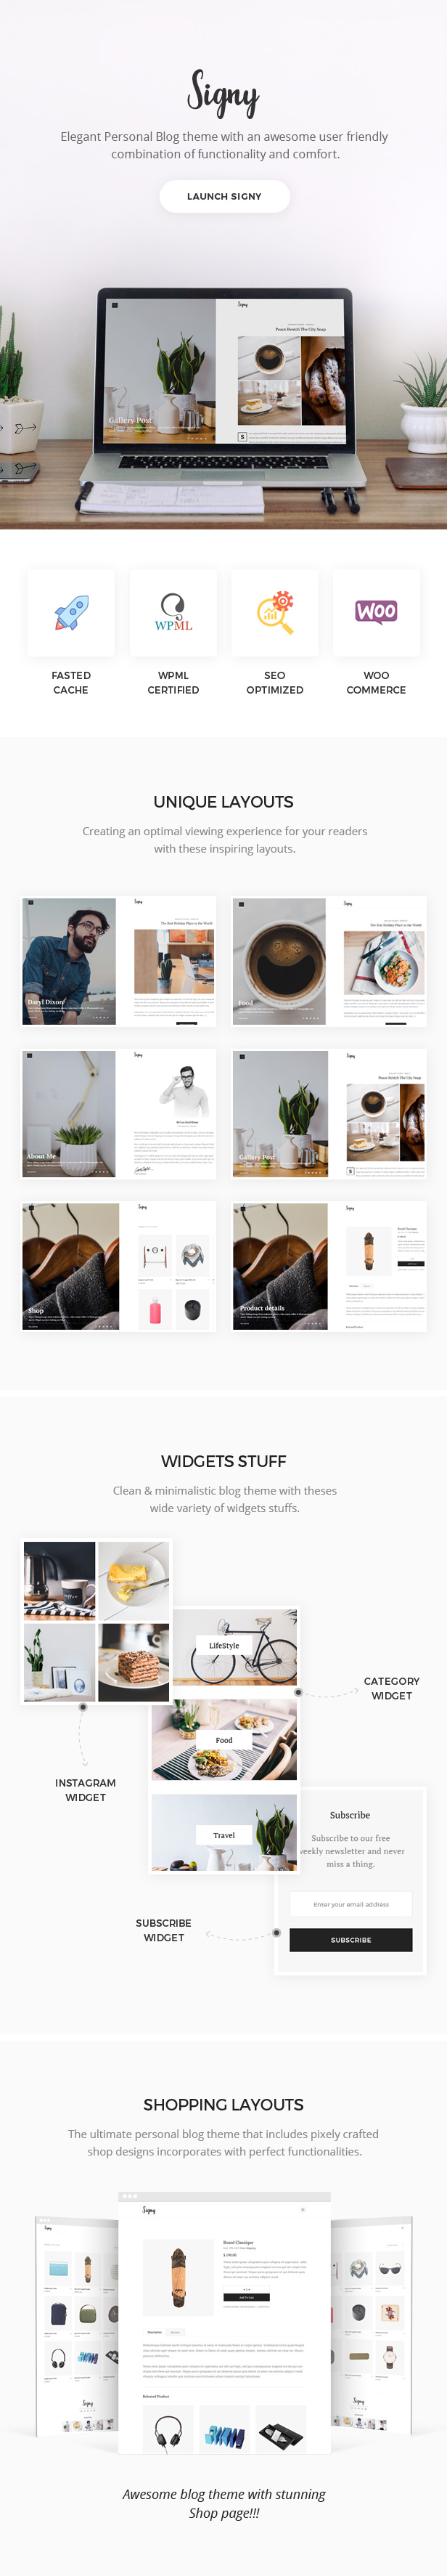 Signy Theme Features